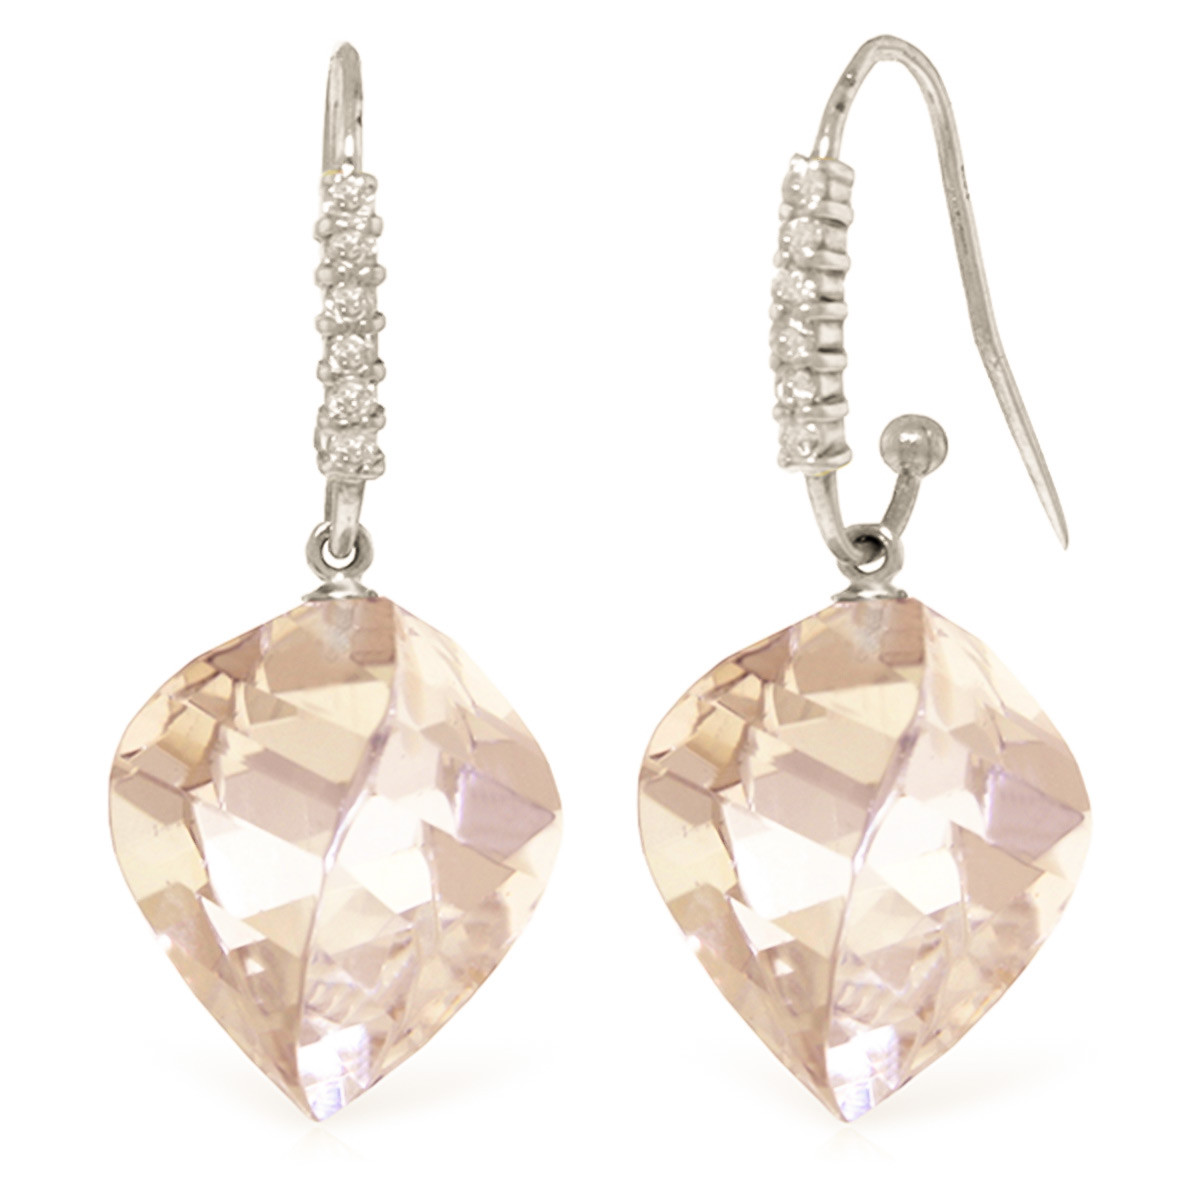 White Topaz Drop Earrings 25.78 ctw in 9ct White Gold